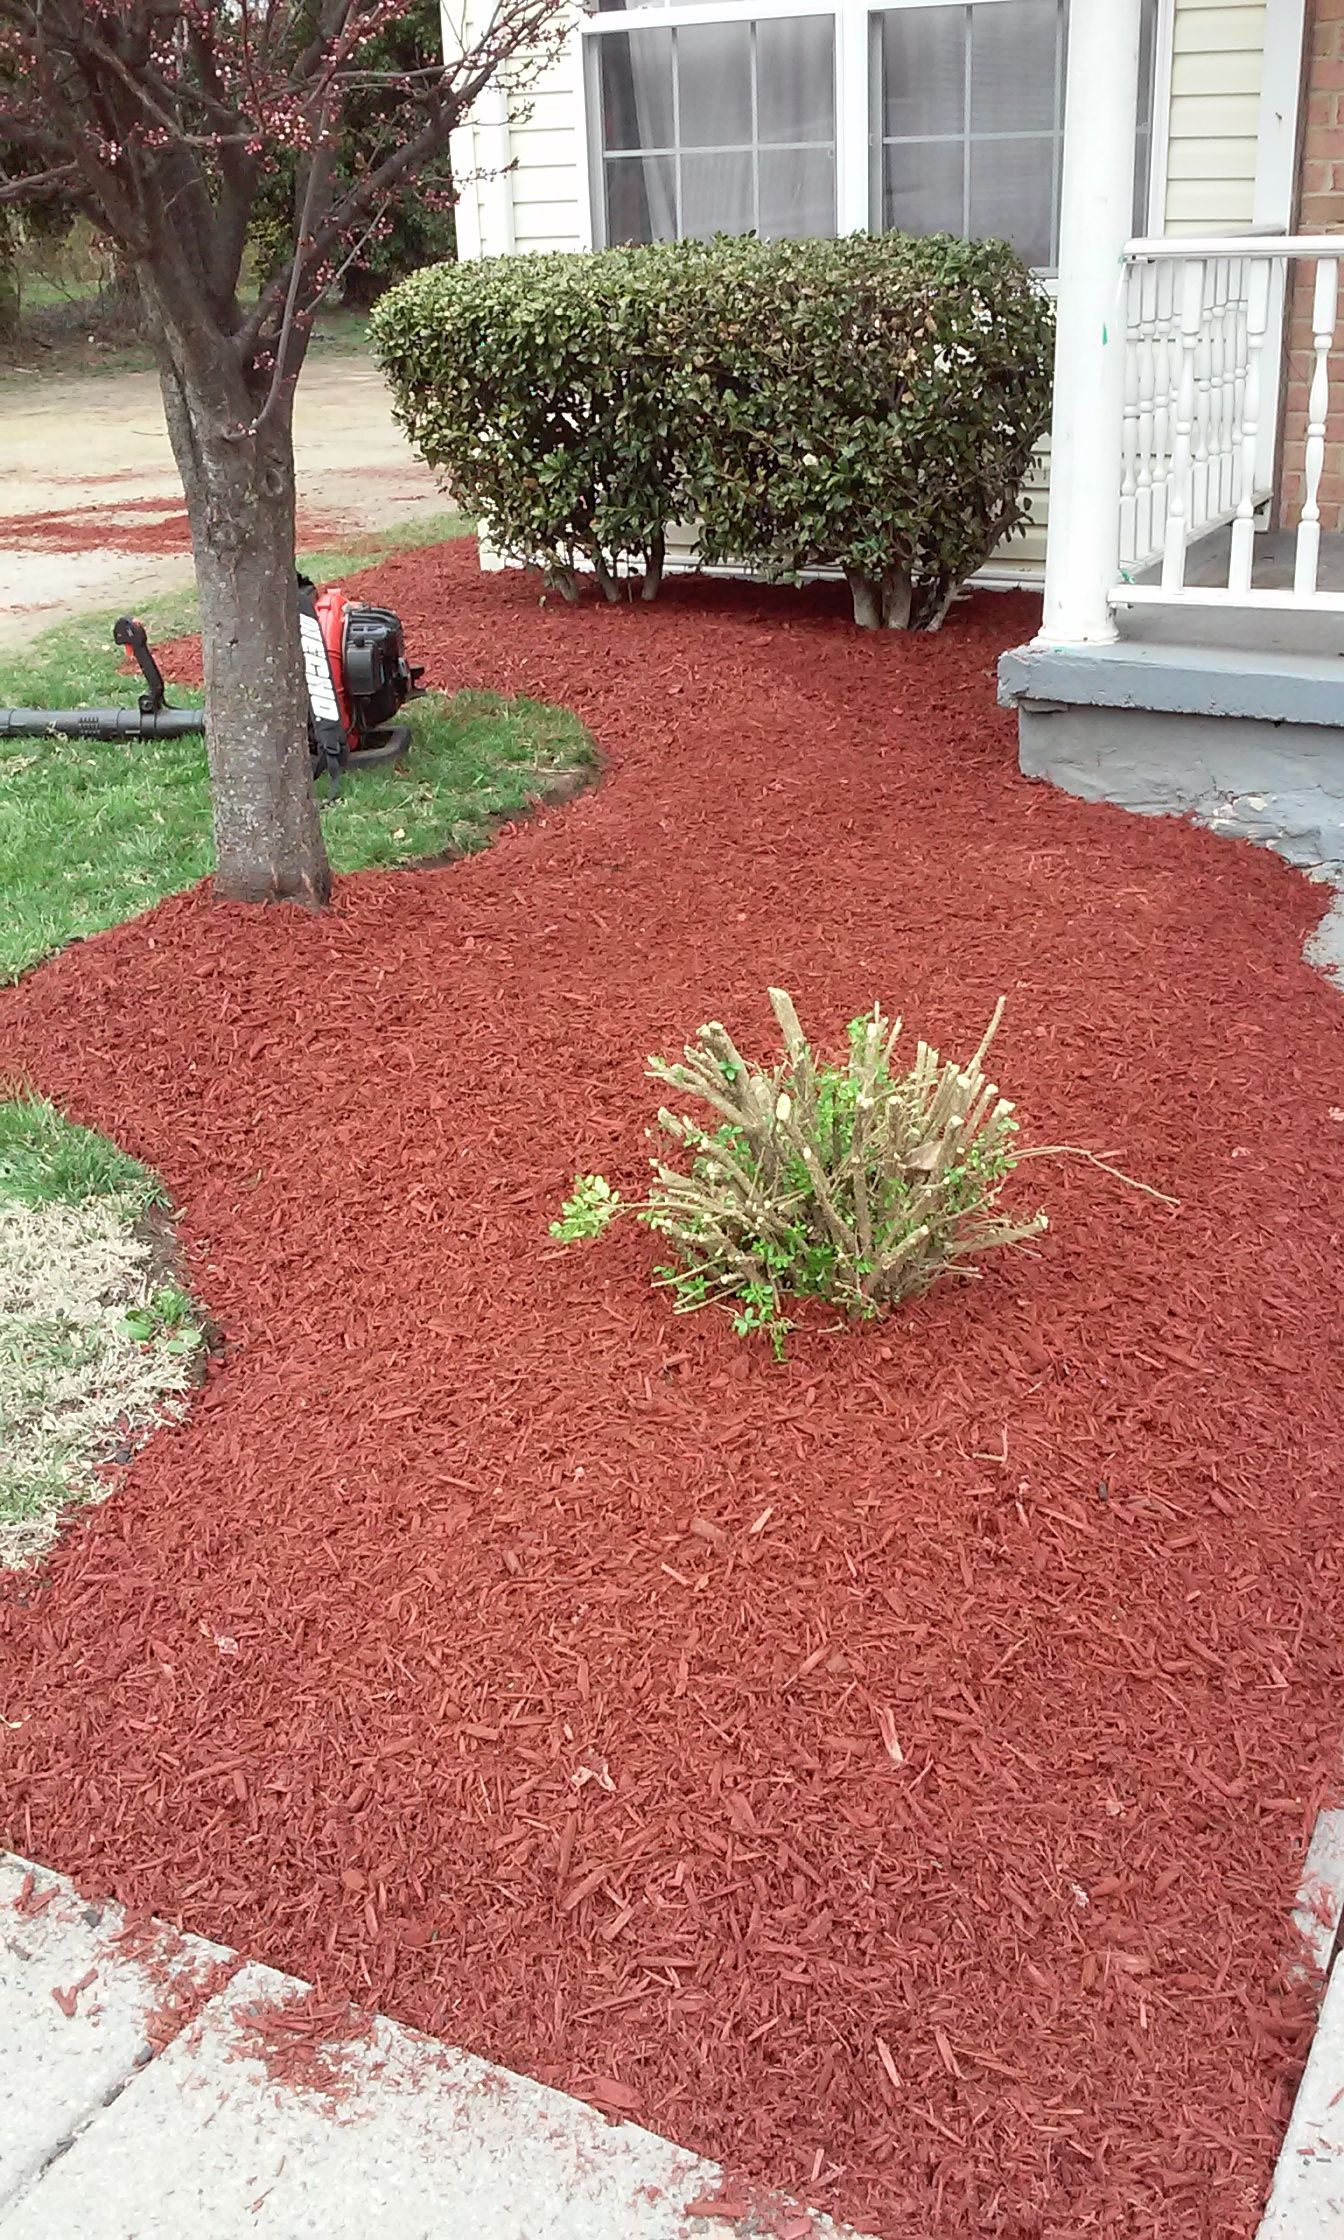 We Offer Tree Service S O D Mulch Topsoil Stone Work Lawn Service Plants And More Give Us A Call At 443 900 4303 Lawn Care Lawn Service Tree Service